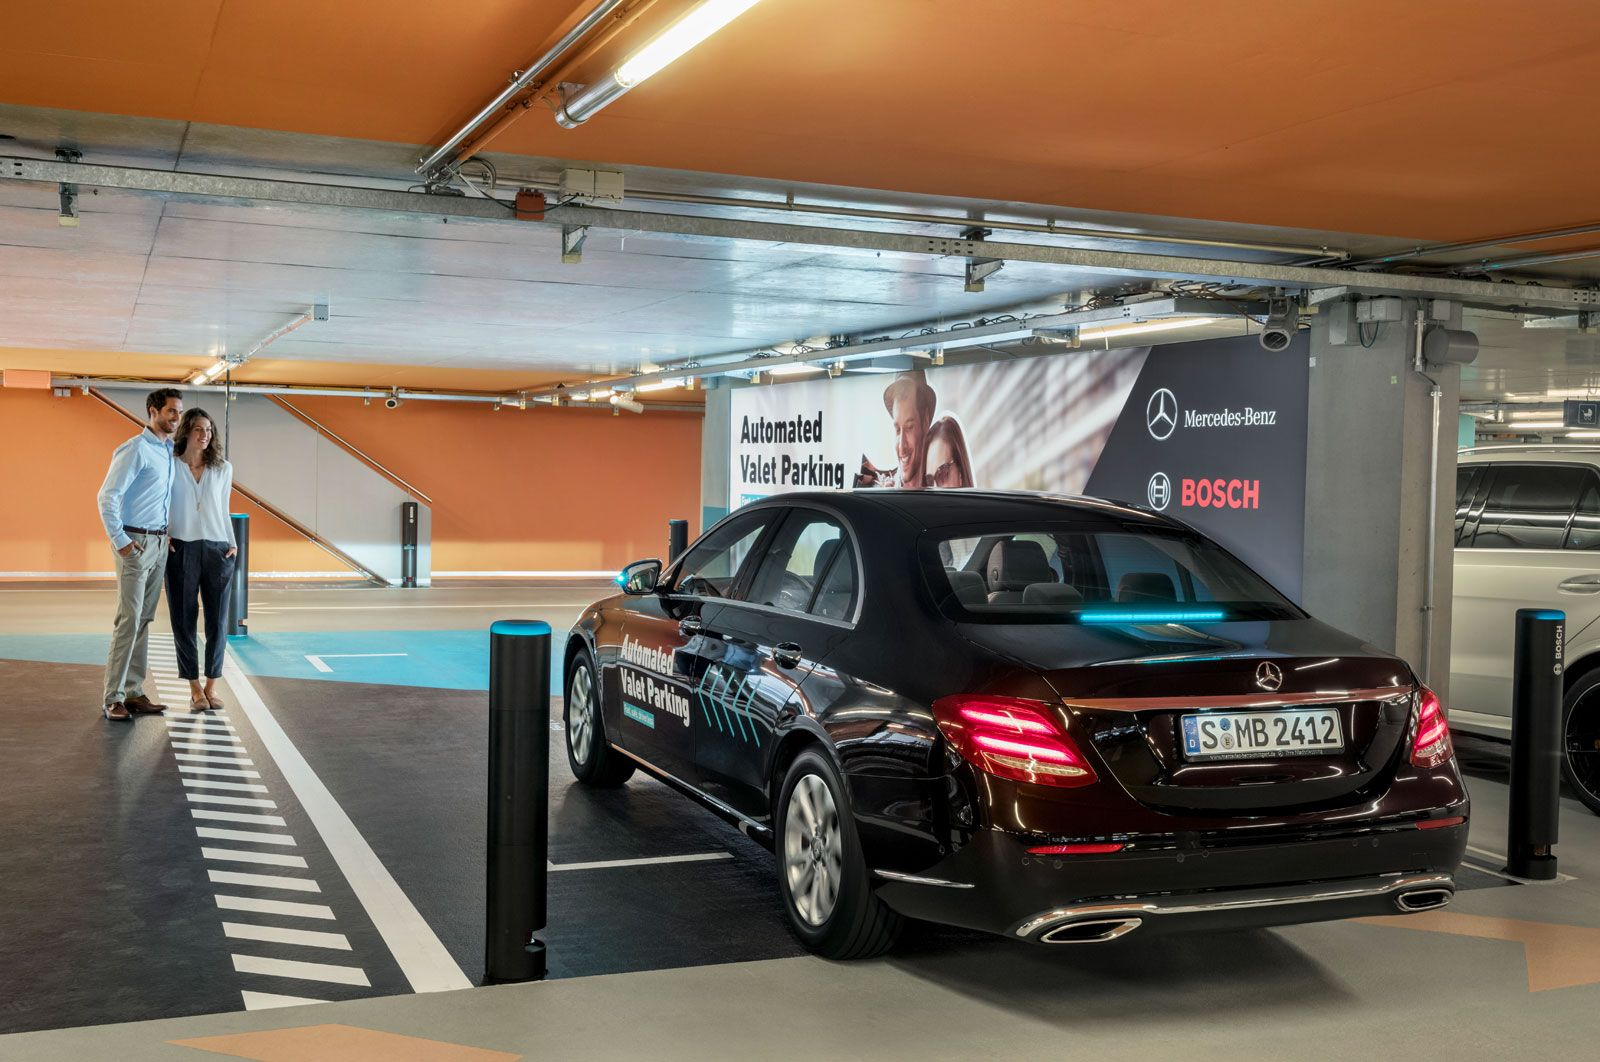 At The Mercedes Museum Your Rental Car Parks Itself Mercedes Car Parking Car Rental